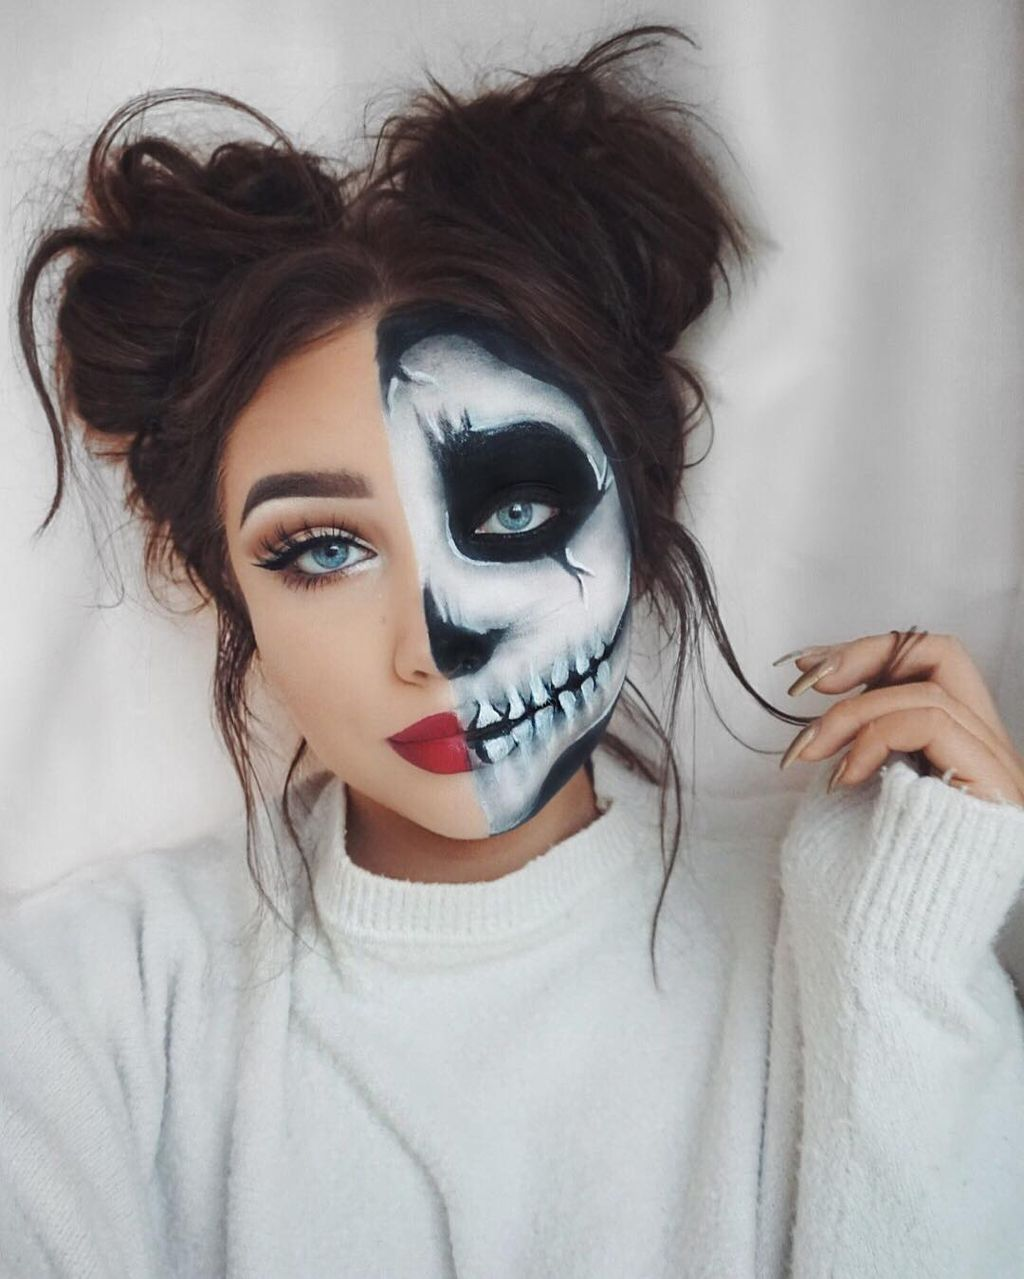 Creepy But Cute Halloween Costumes.Awesome 71 Inspiring Halloween Makeup Ideas To Makes You Look Creepy Melhor Maquiagem Para Halloween Halloween Make Maquiagem De Halloween Assustador